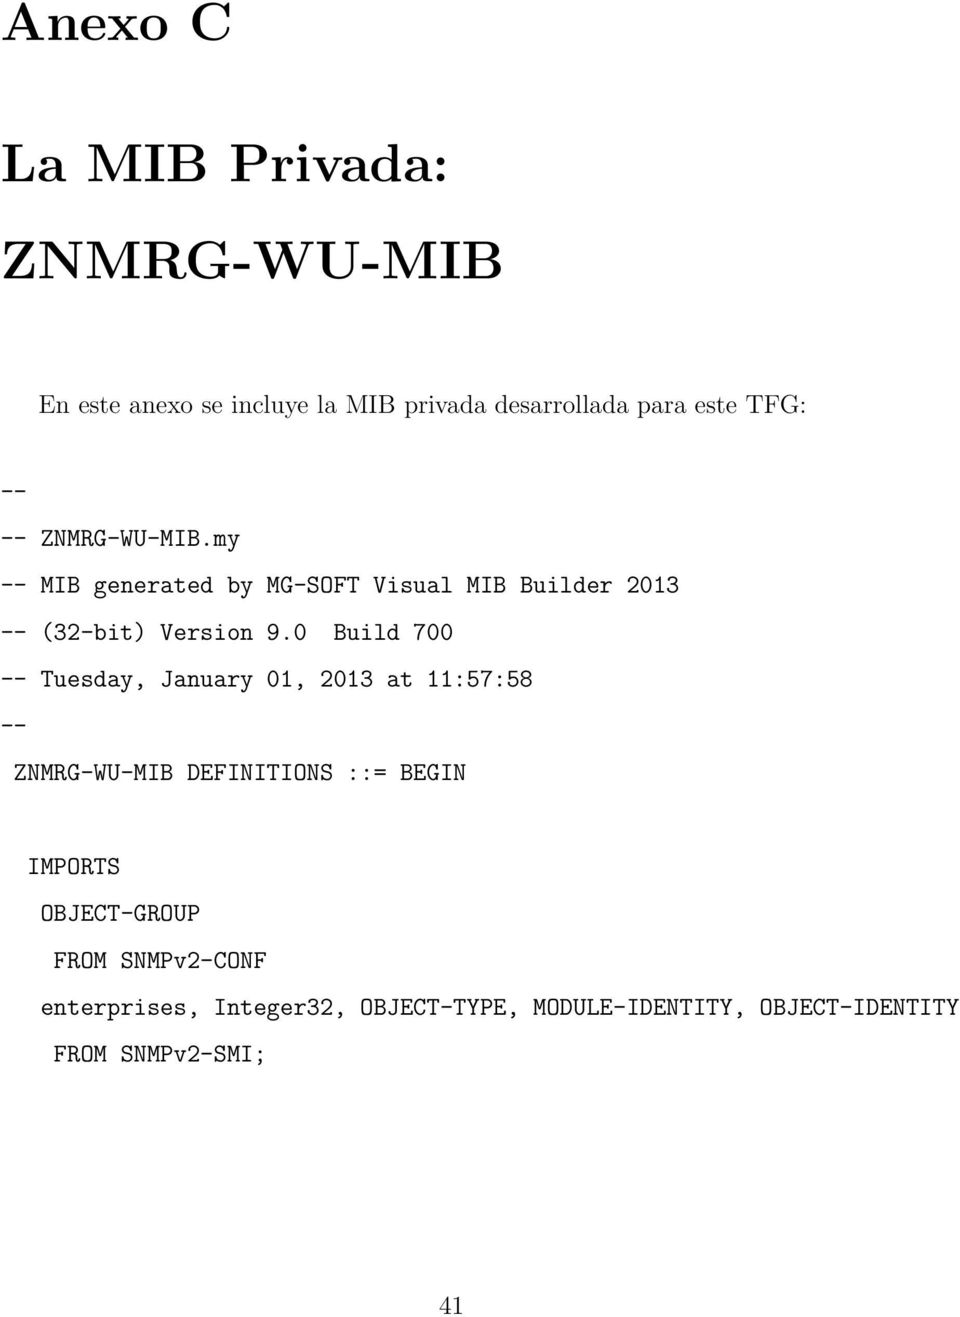 0 Build 700 -- Tuesday, January 01, 2013 at 11:57:58 -- ZNMRG-WU-MIB DEFINITIONS ::= BEGIN IMPORTS